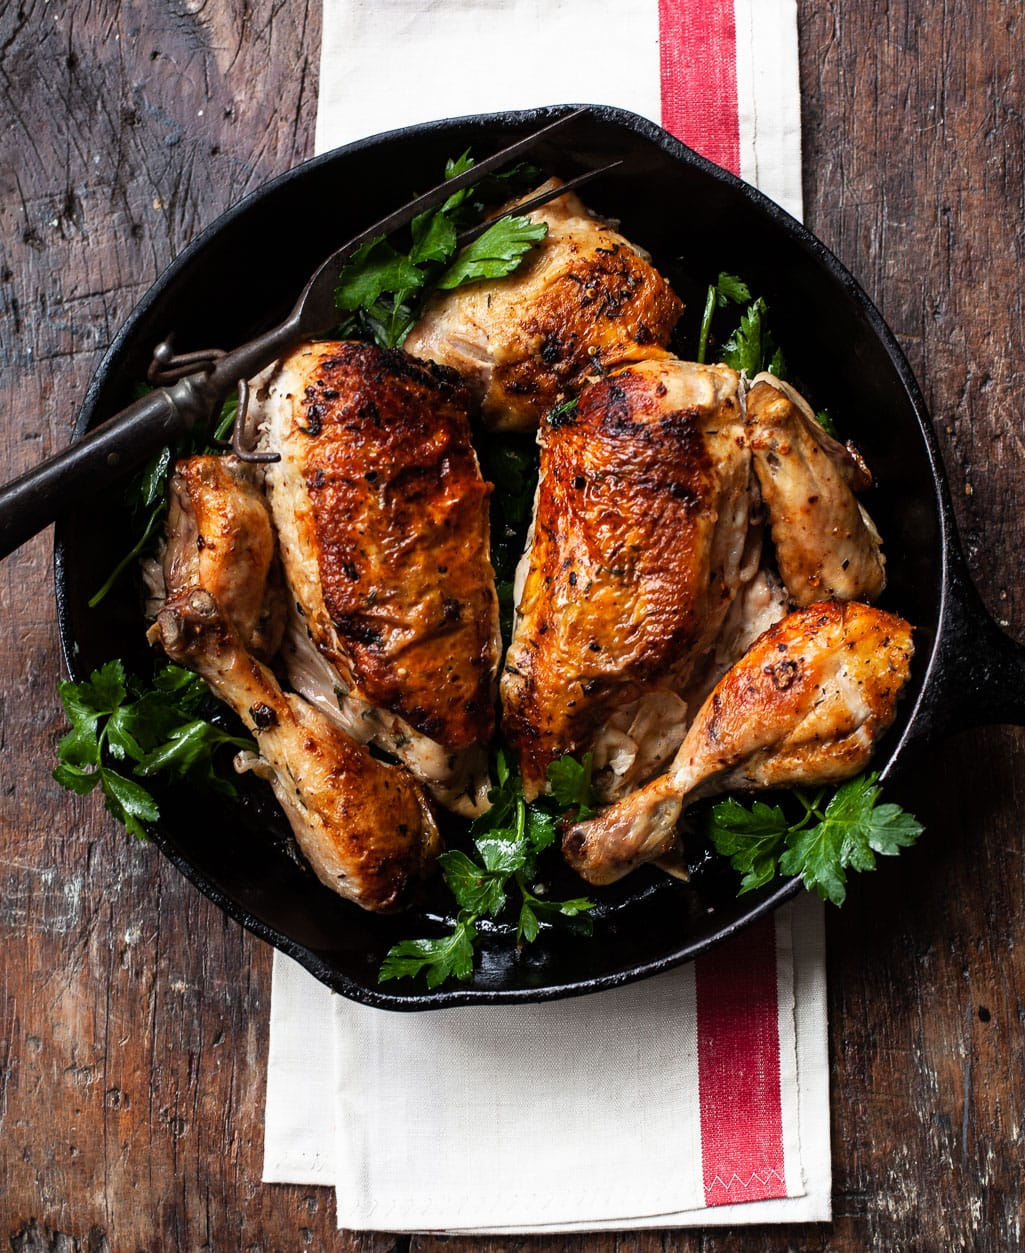 Roast Chicken with Italian Chili Butter